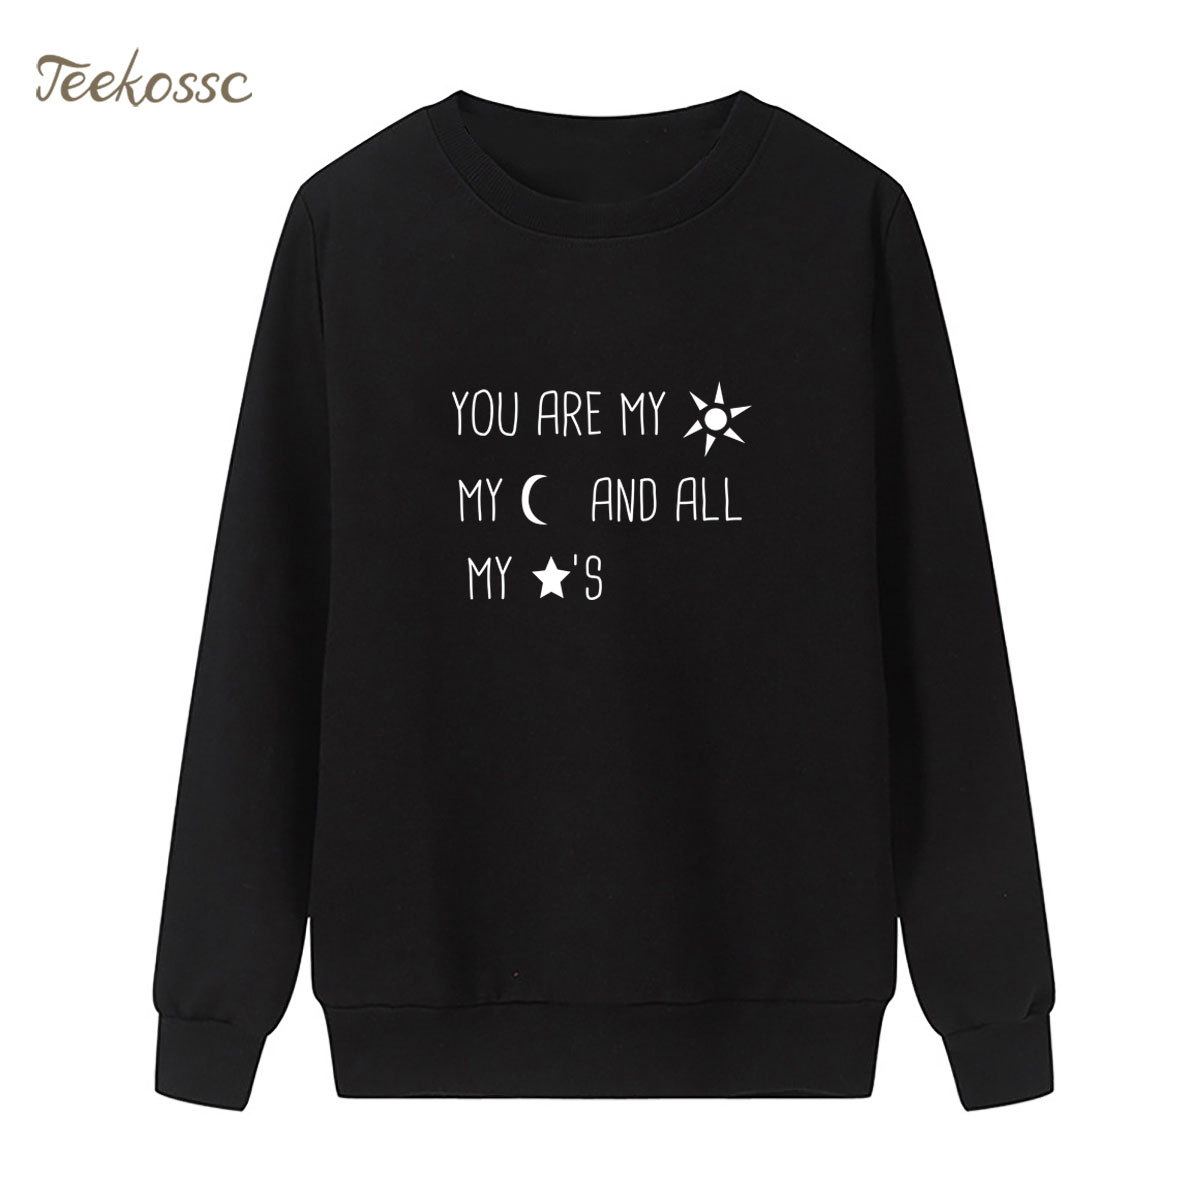 You Are My Sun My Moon And All My Stars Sweatshirt Print Hoodie 2018 Winter Autumn Women Lasdies Pullover Loose Sweet Sportswear